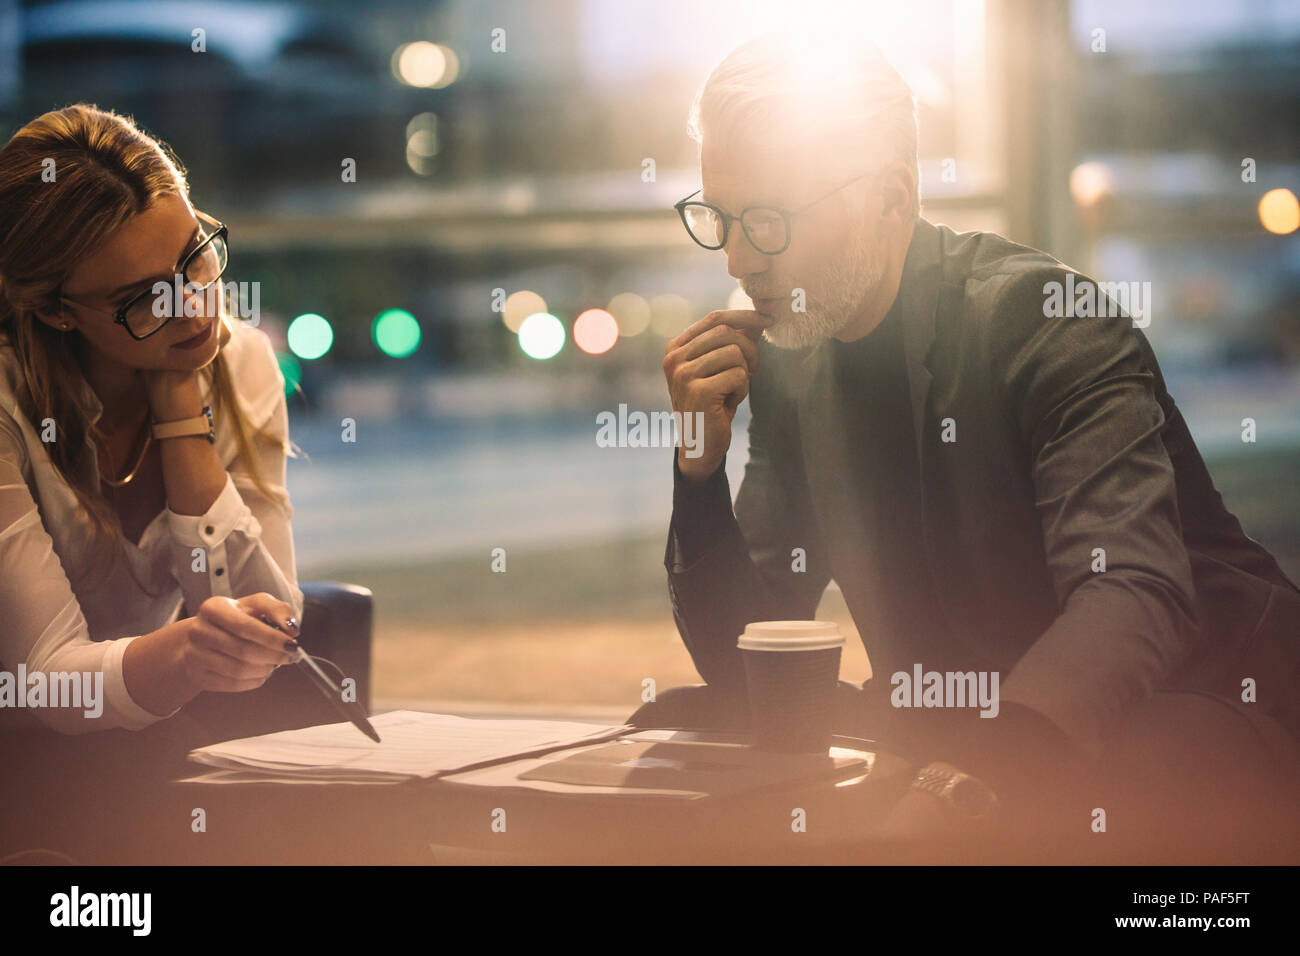 Two business people discussing over some paperwork while in office lobby. Business people working together in office. - Stock Image